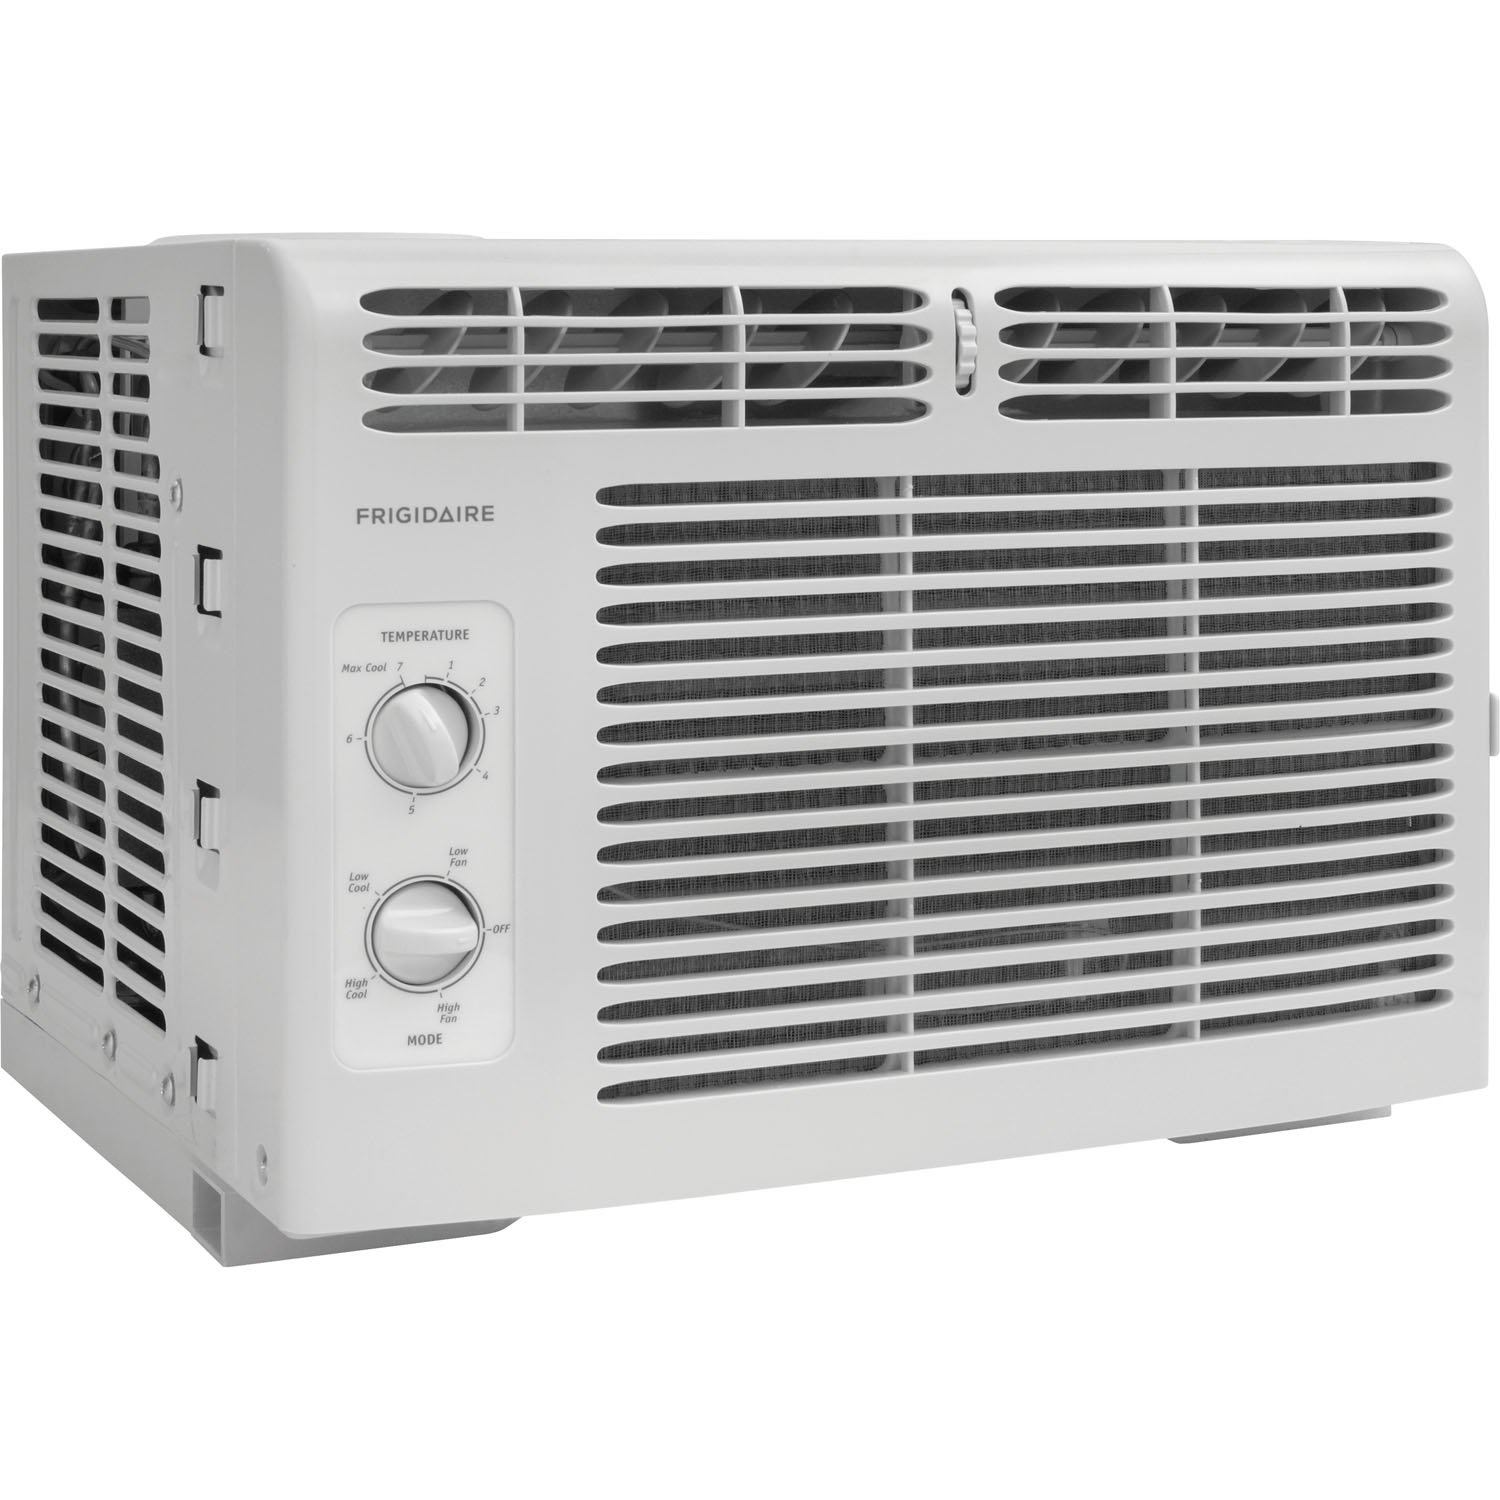 Frigidaire FFRA0511R1 5, 000 BTU 115V Window-Mounted Mini-Compact Air Conditioner with Mechanical Controls by Frigidaire (Image #7)